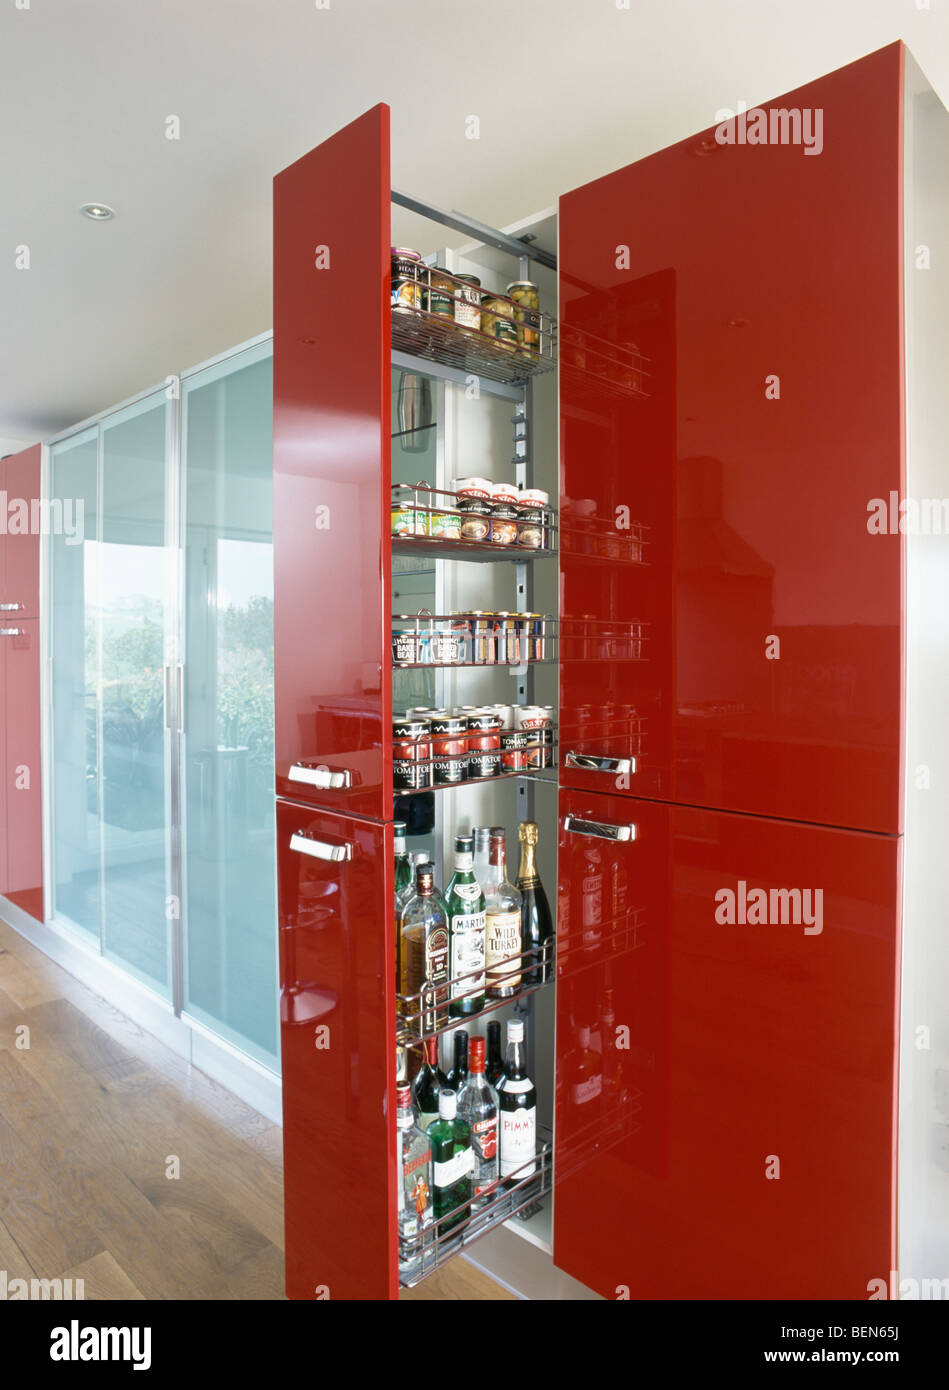 Pull Out Storage Shelves In Red Larder Cupboard In Modern Kitchen